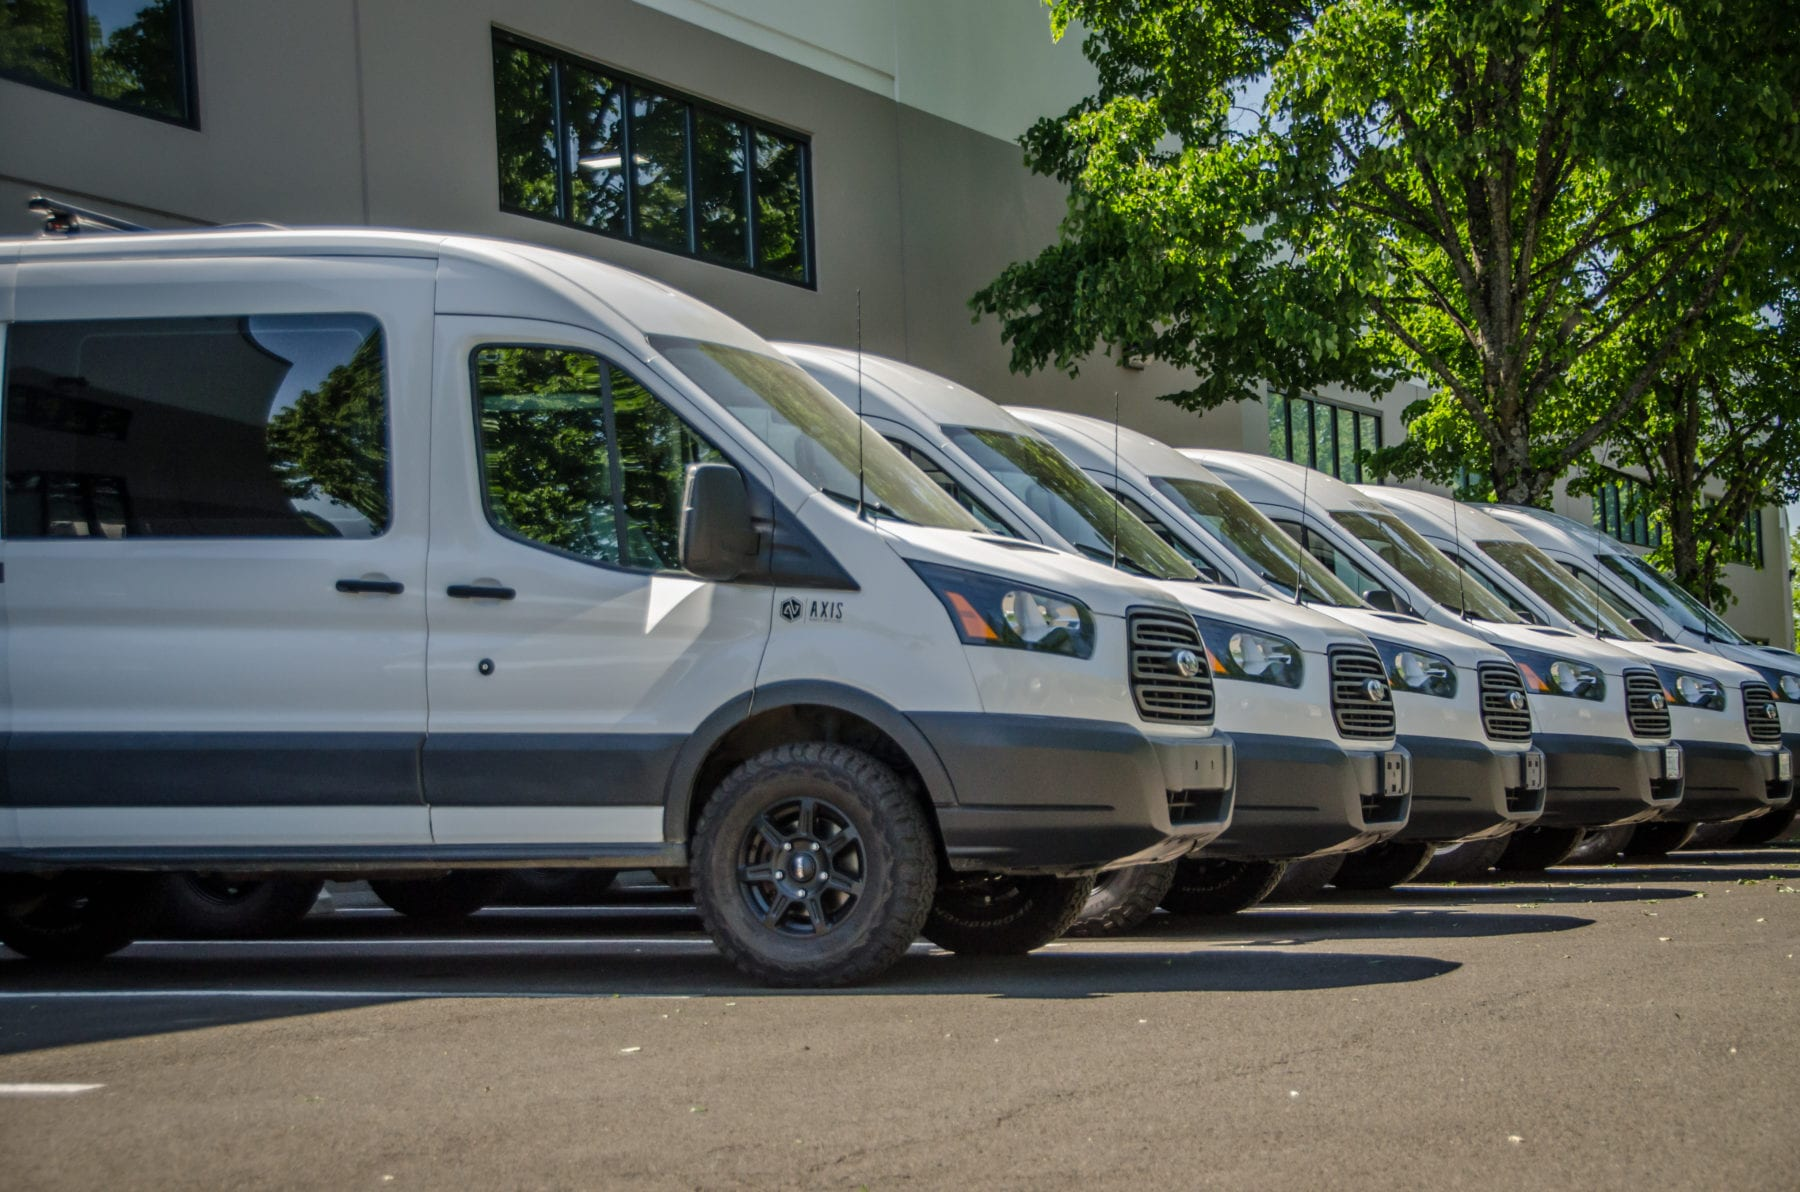 The Axis Vehicle Outfitter's fleet includes 4wd Ford Econolines and 2wd Ford Transits and 4wd Ford Transit camper vans for rent and for sale